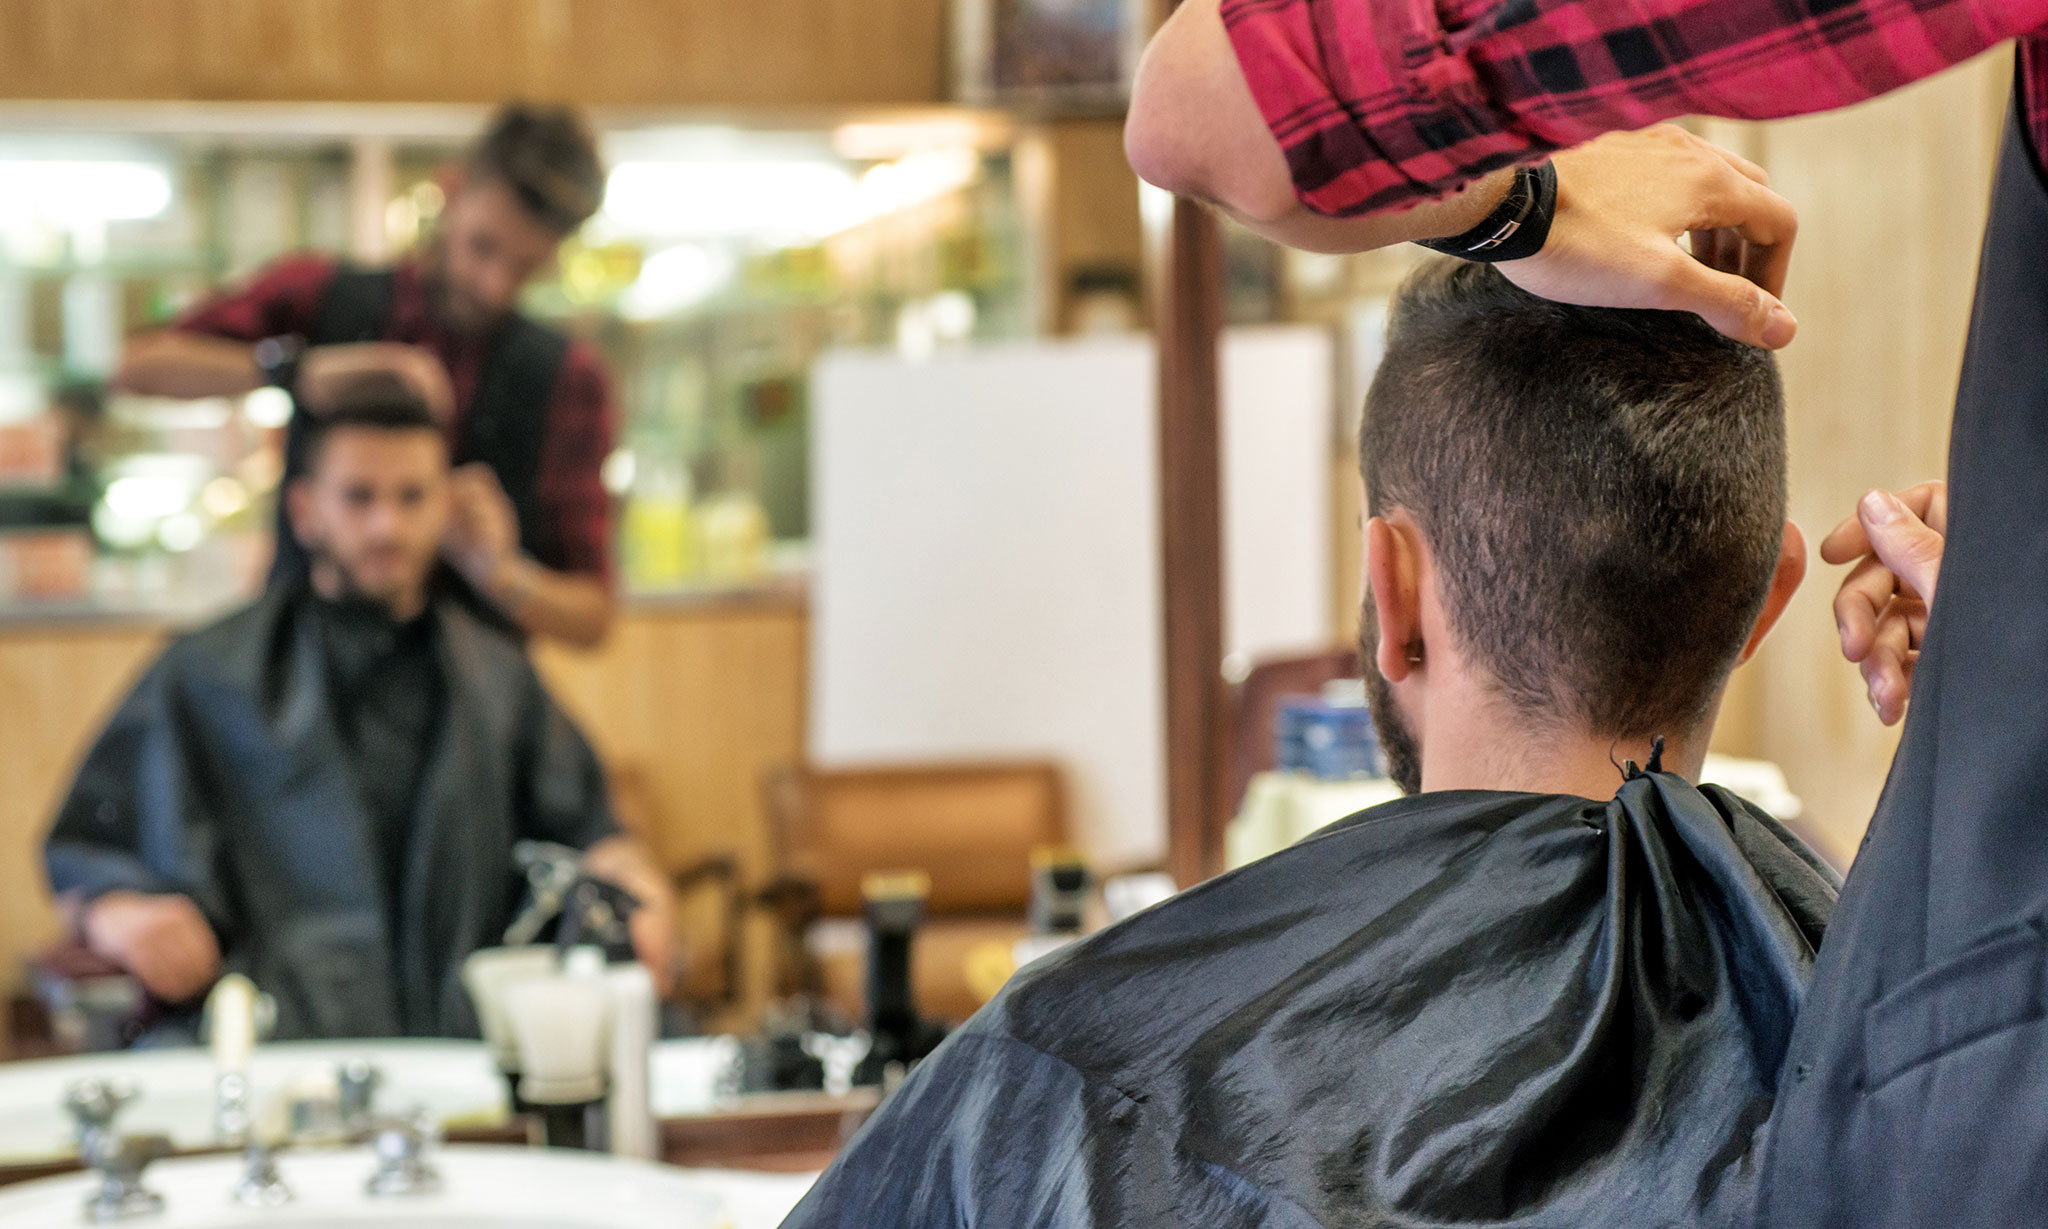 Knockouts Haircuts For Men Centennial Co Groupon